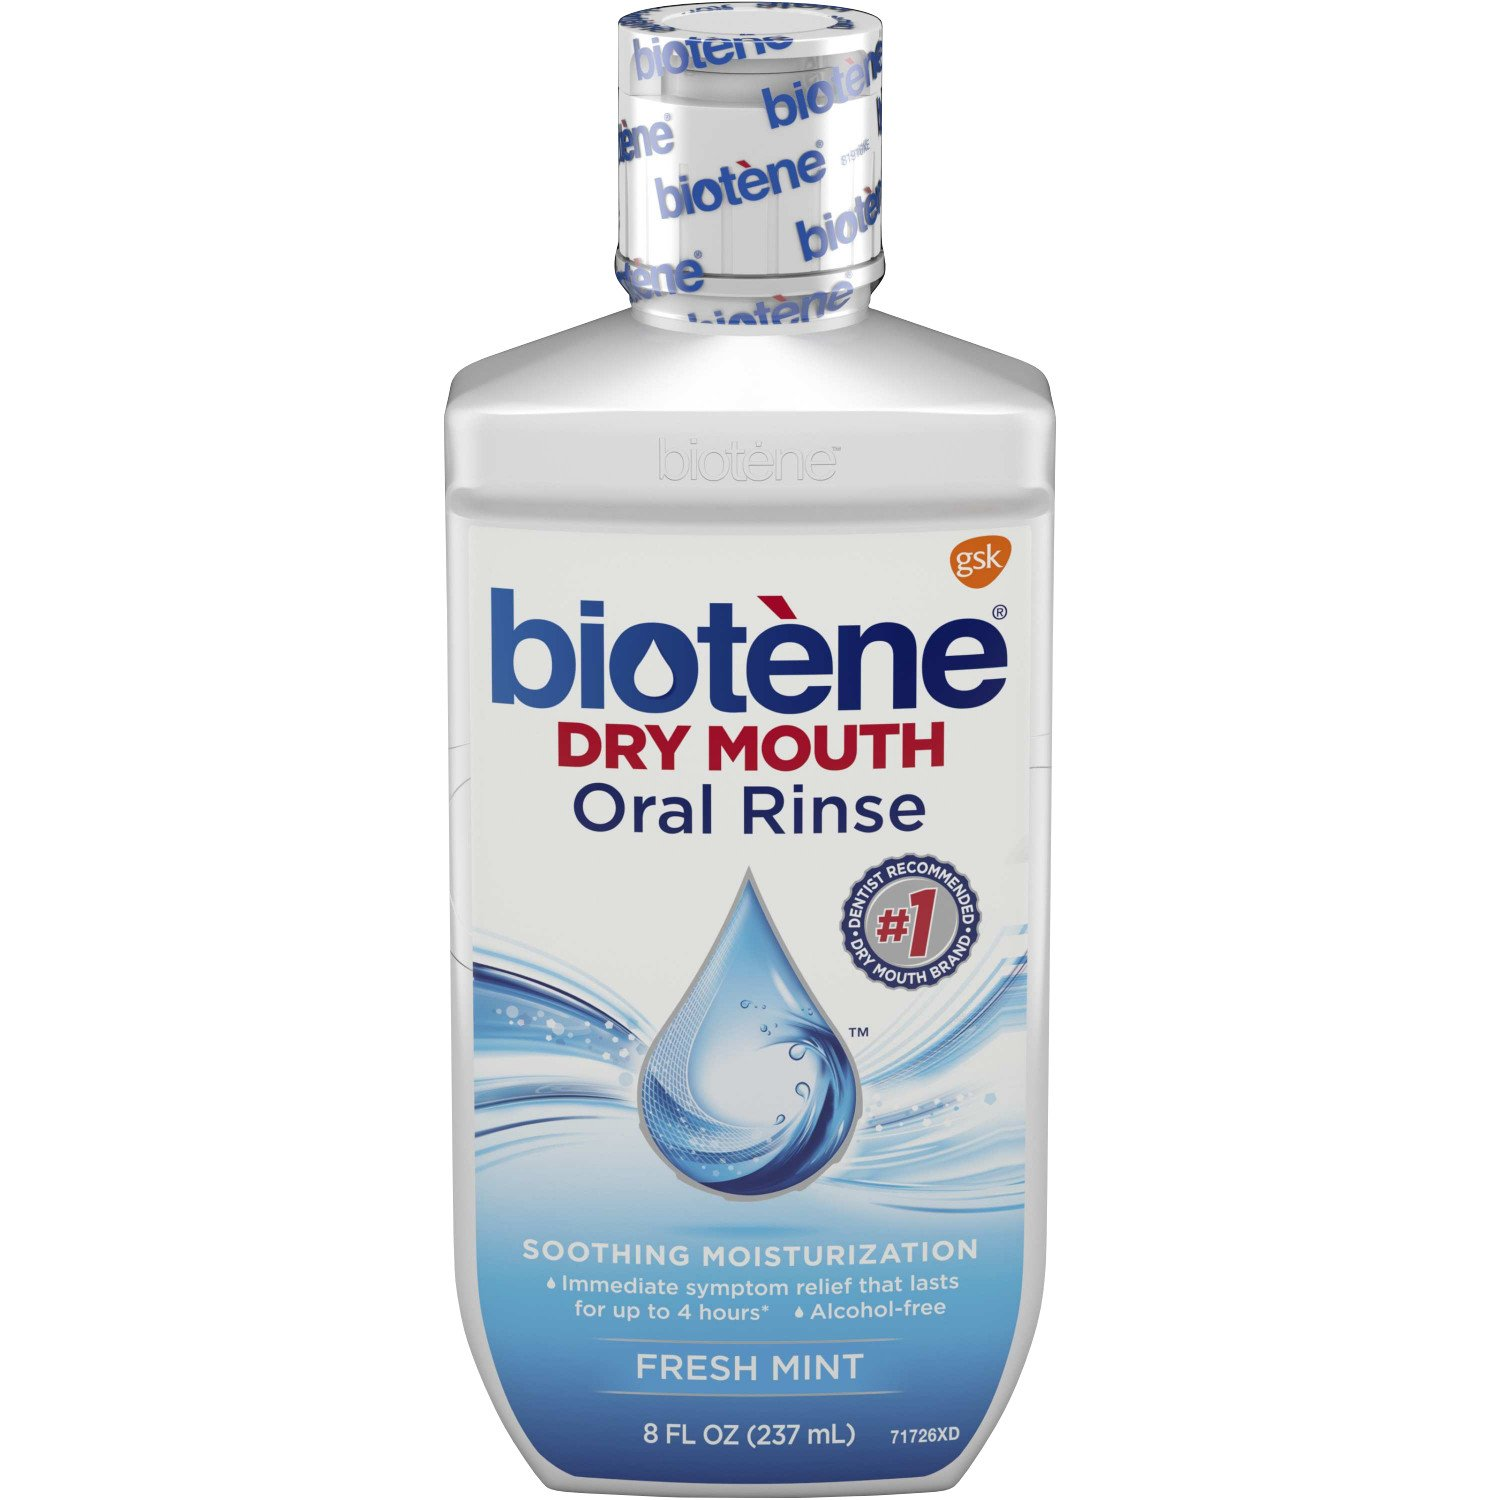 Biotene Fresh Mint Moisturizing Oral Rinse Mouthwash, Alcohol-Free, for Dry Mouth, 8 ounce (pack of 12) GlaxoSmithKline 80225